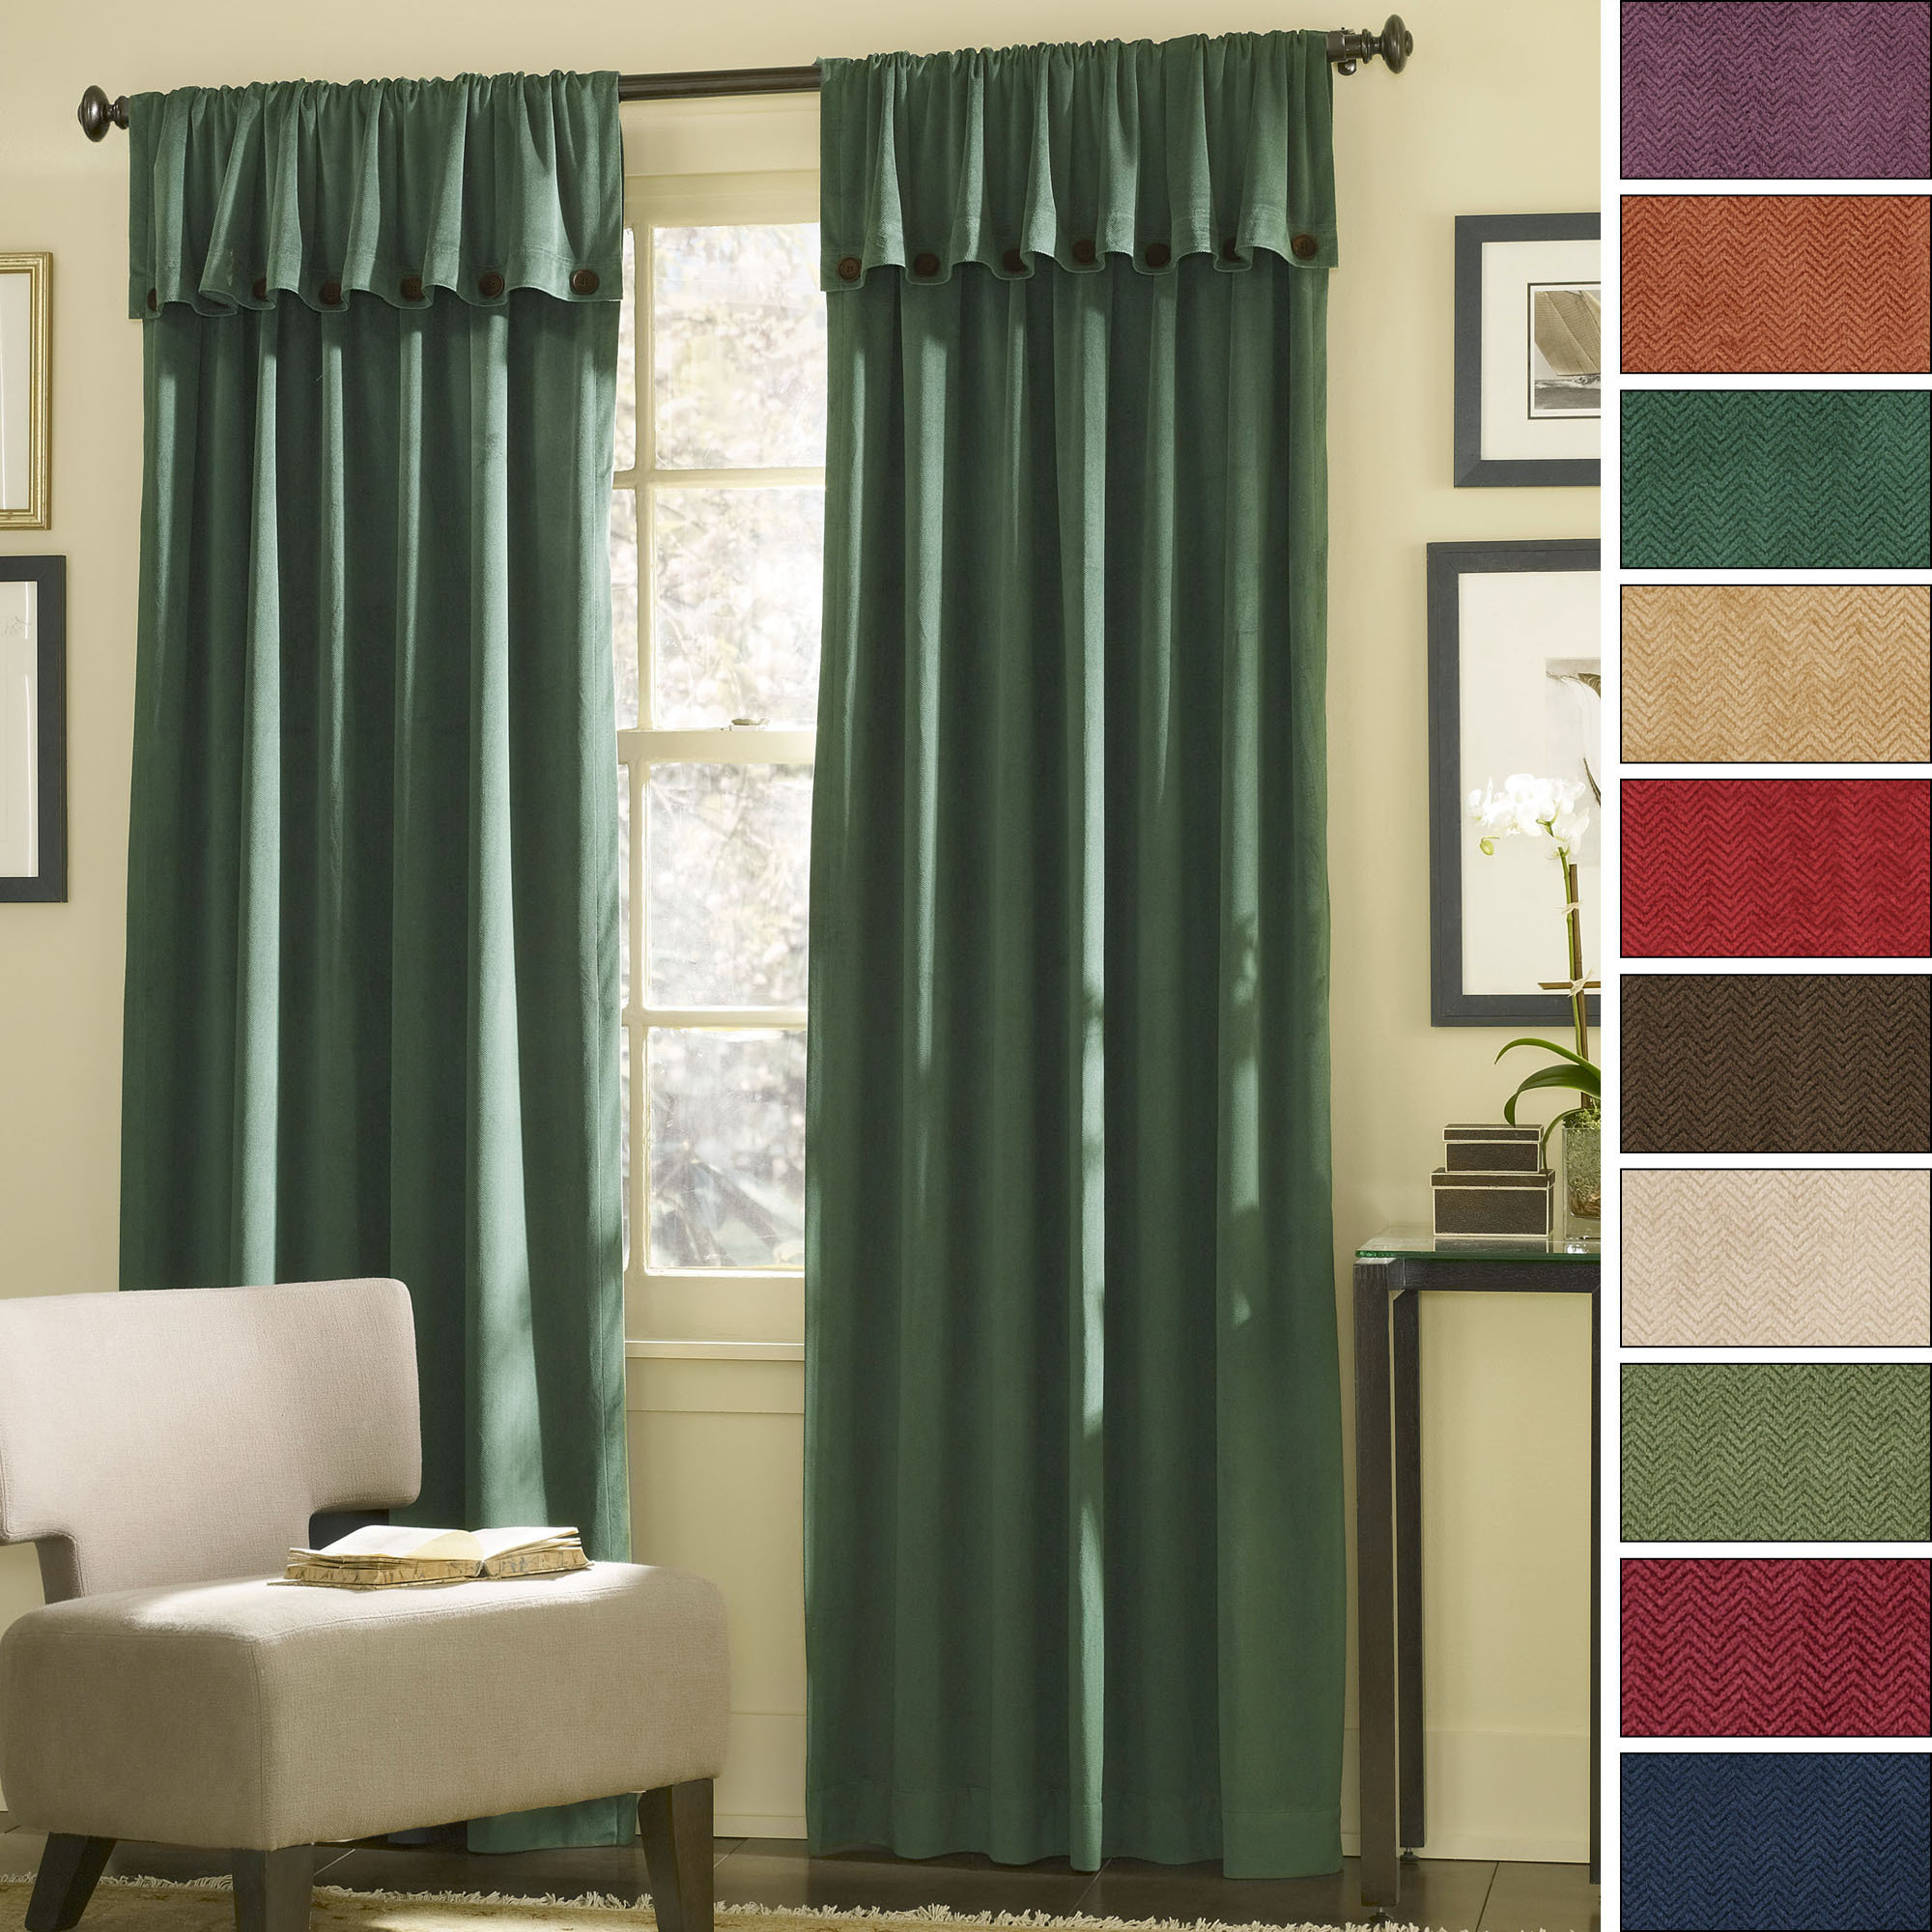 Kitchen French Door Curtains Choosing Top Patio Door Curtains Design Ideasplywoodchair